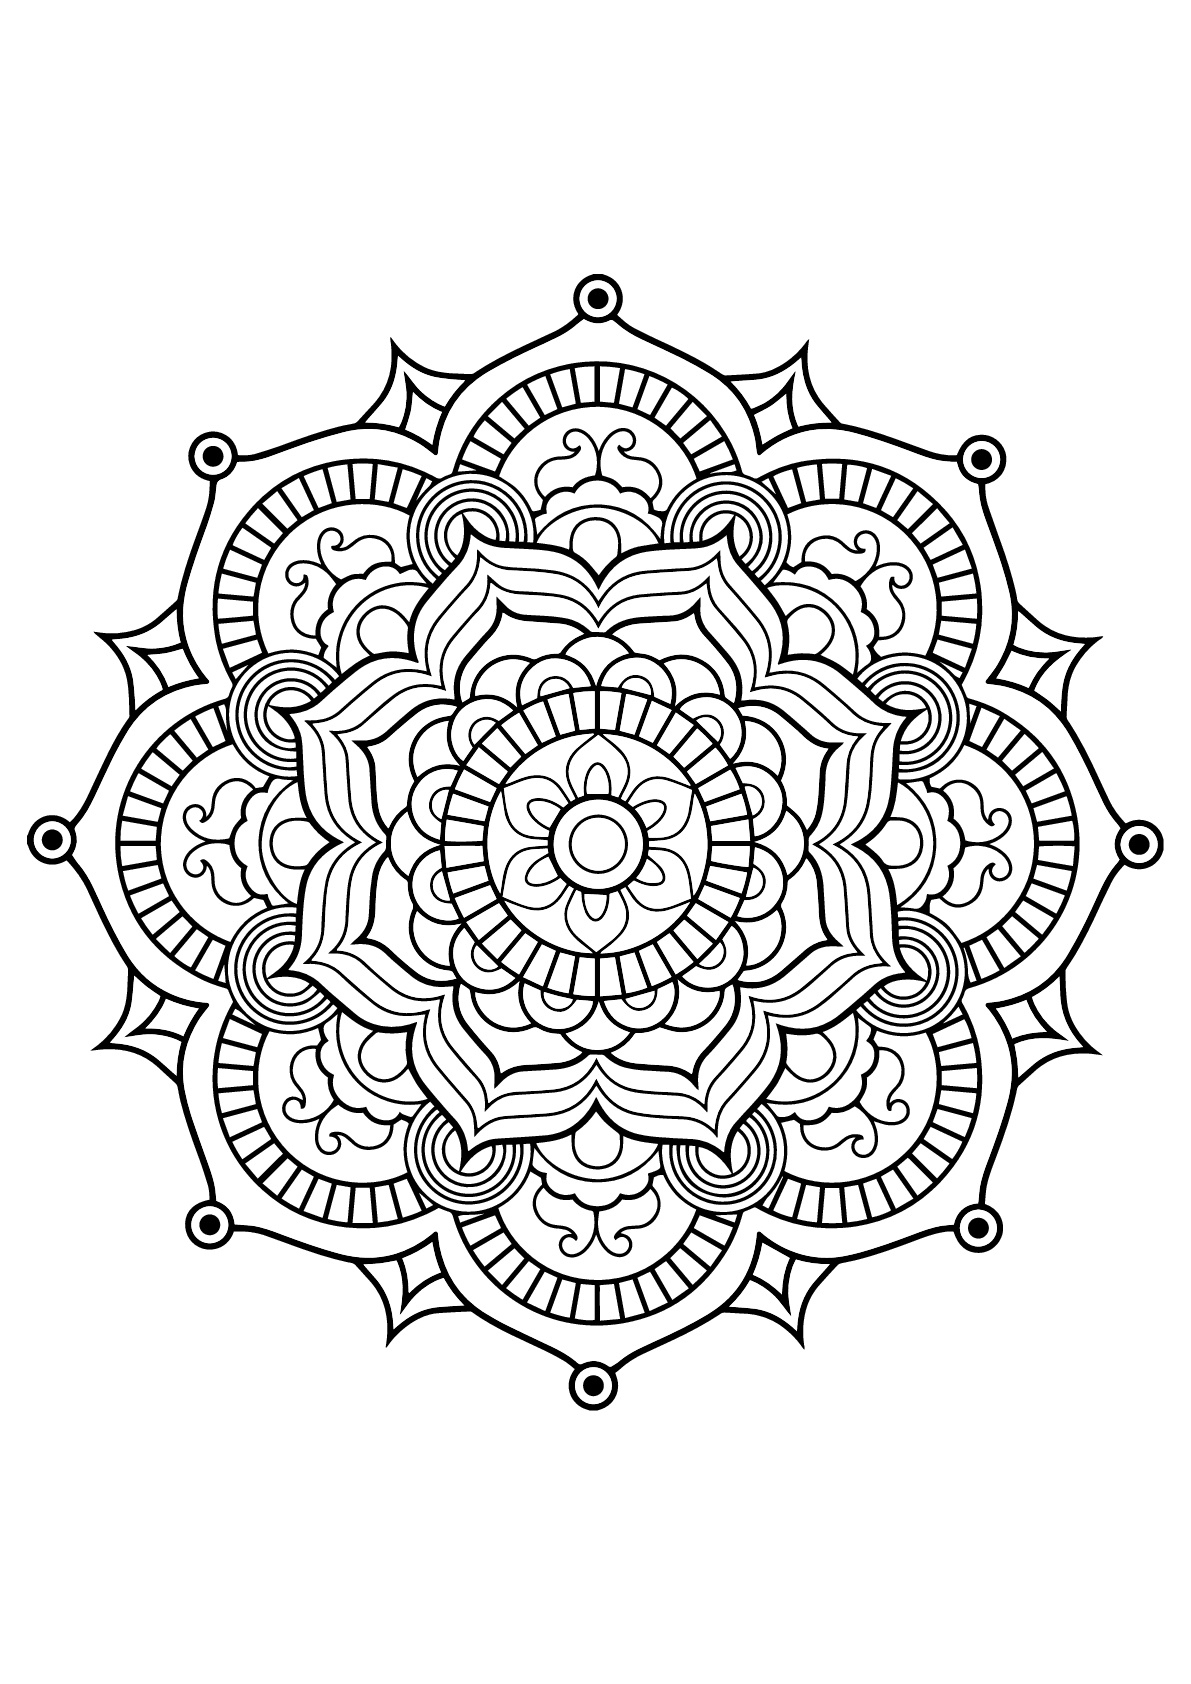 Mandala From Free Coloring Books For Adults 8 - M&Alas à 100 Greatest Mandala Coloring Book: